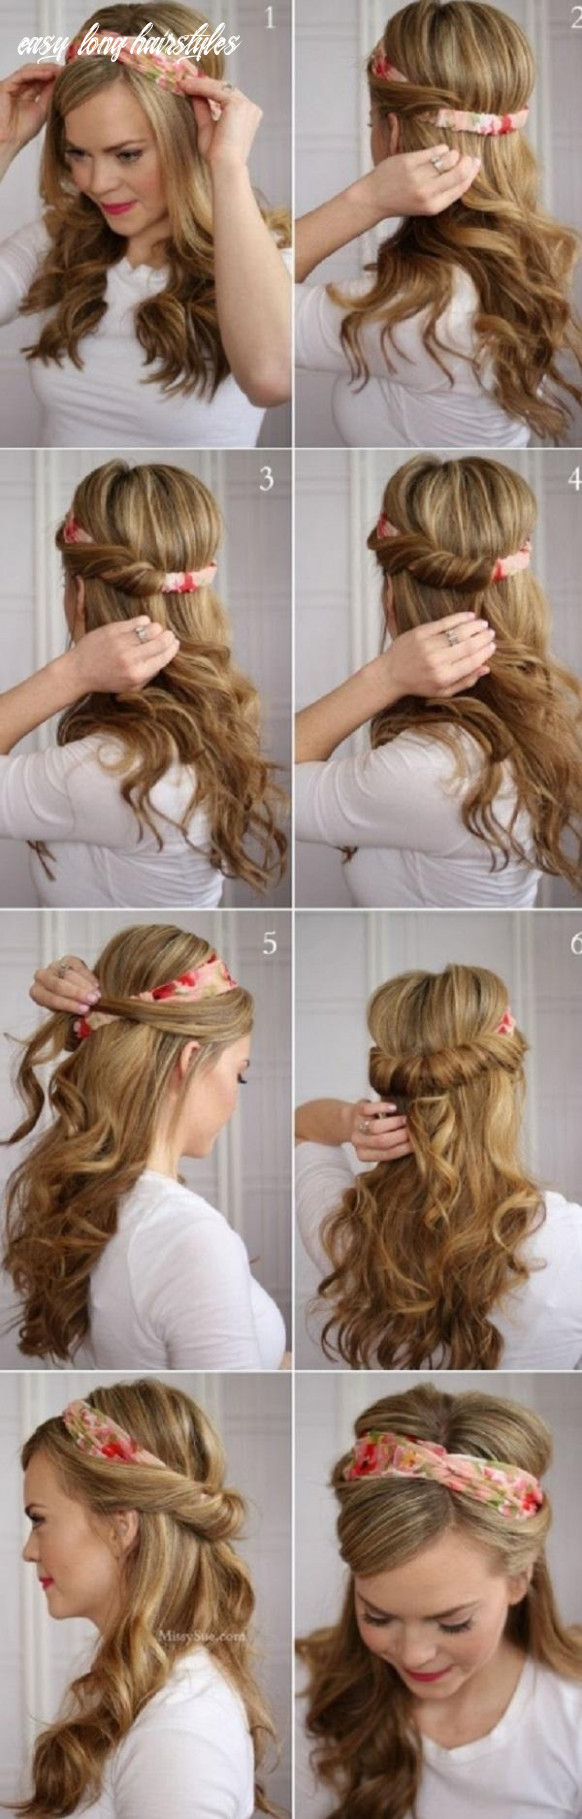 12 easy hairstyles for long hair   cuded easy long hairstyles